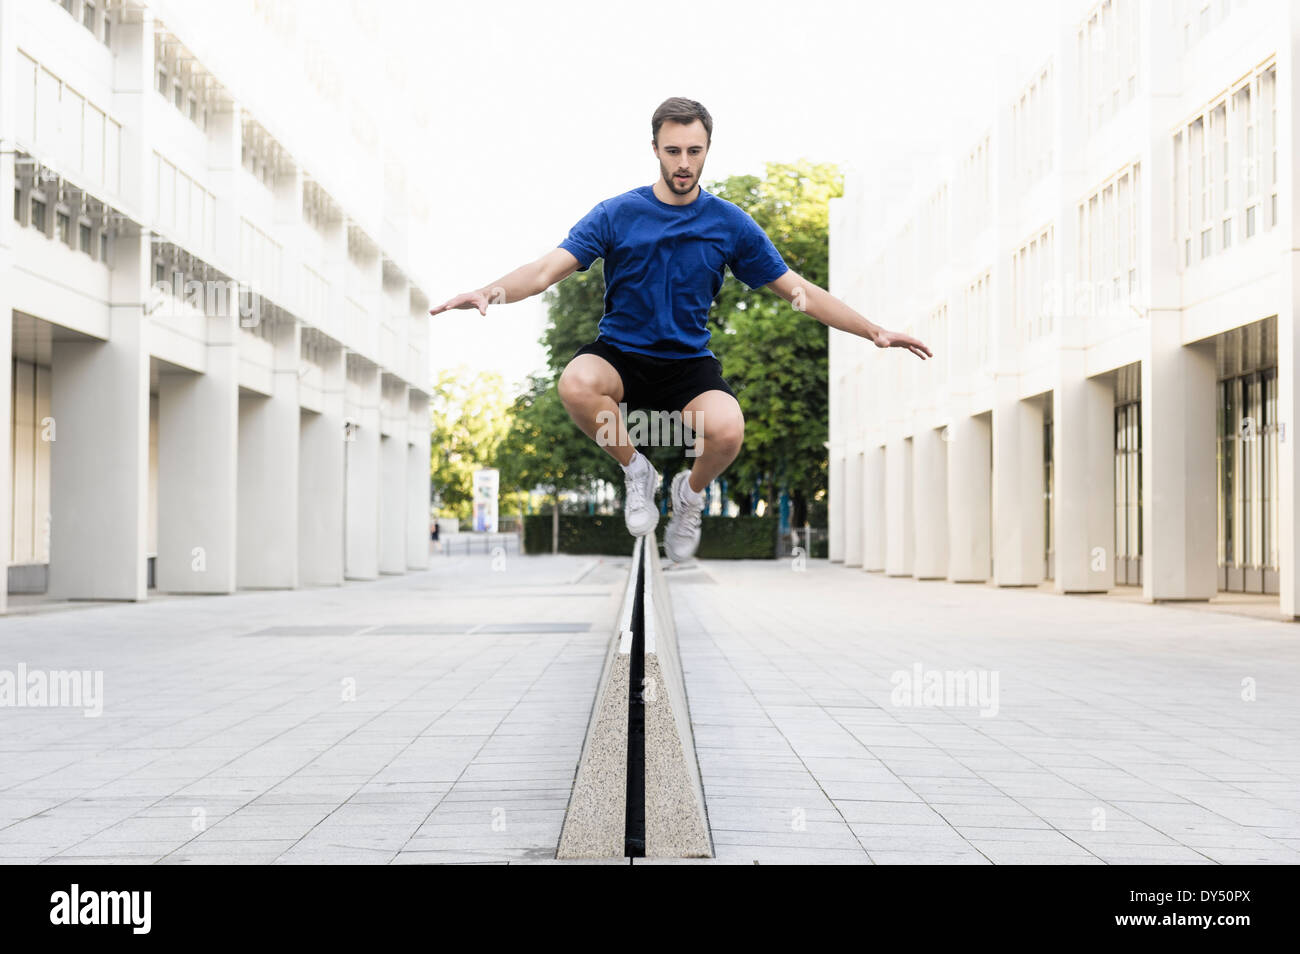 Young man jumping over divider - Stock Image